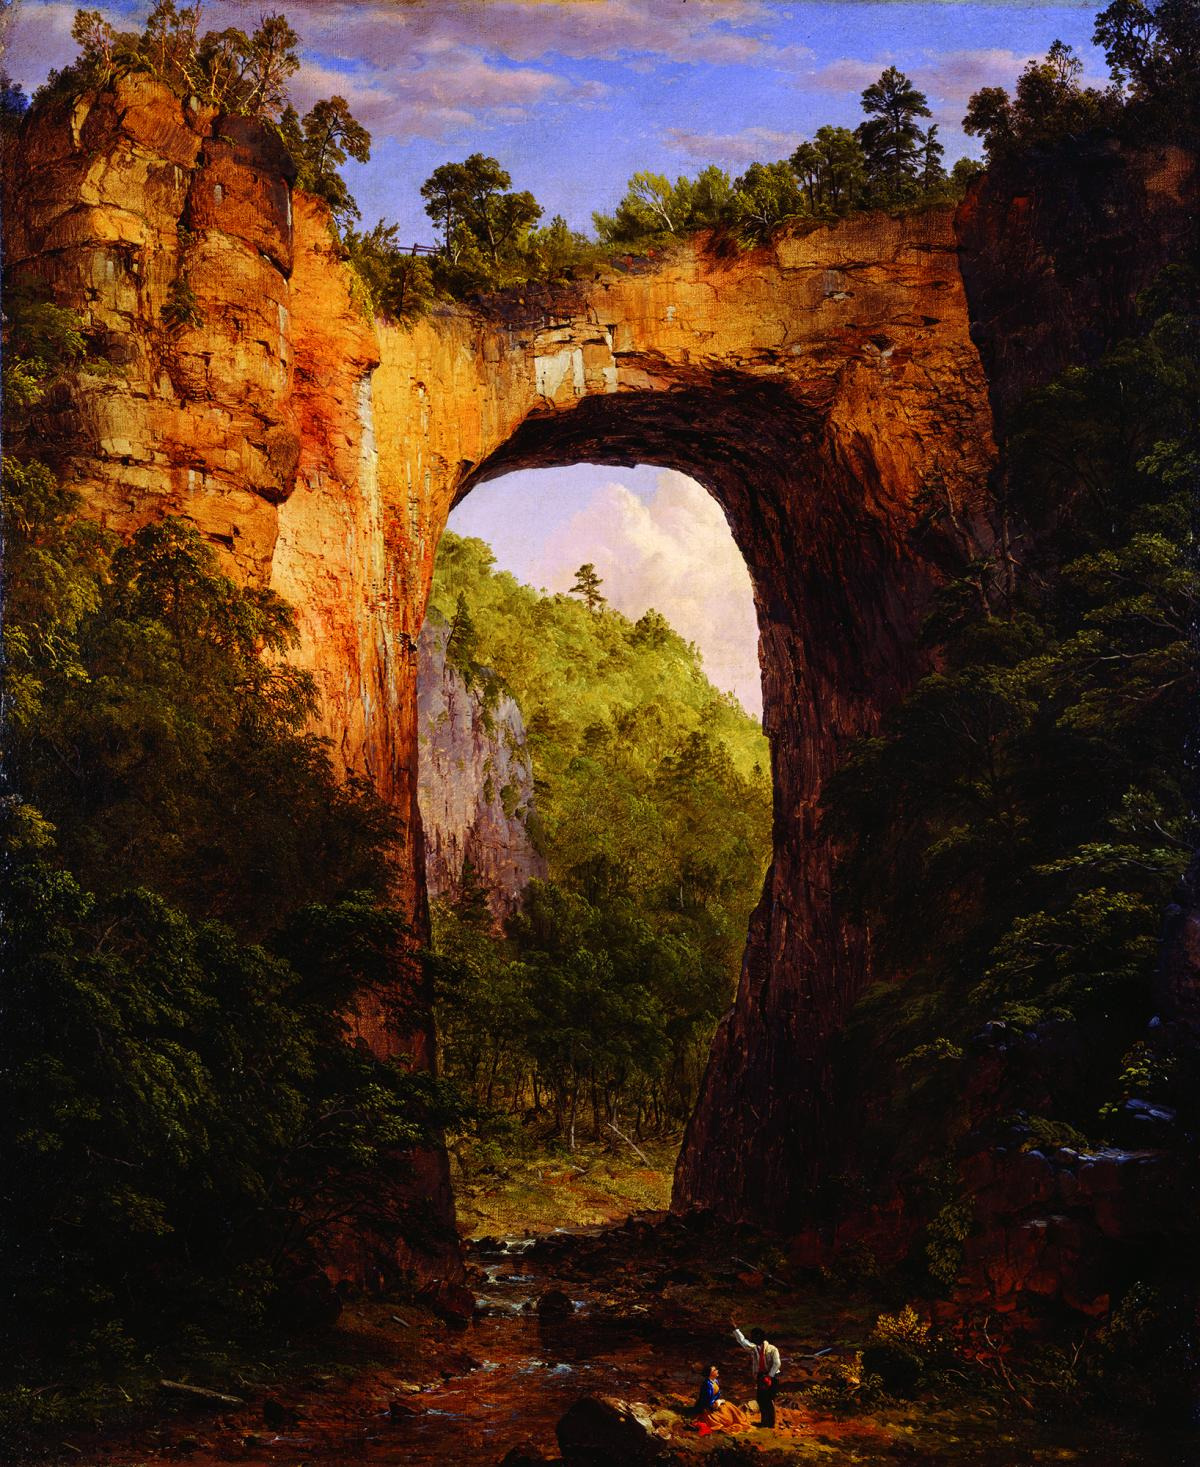 A painting of a bridge made from nature.